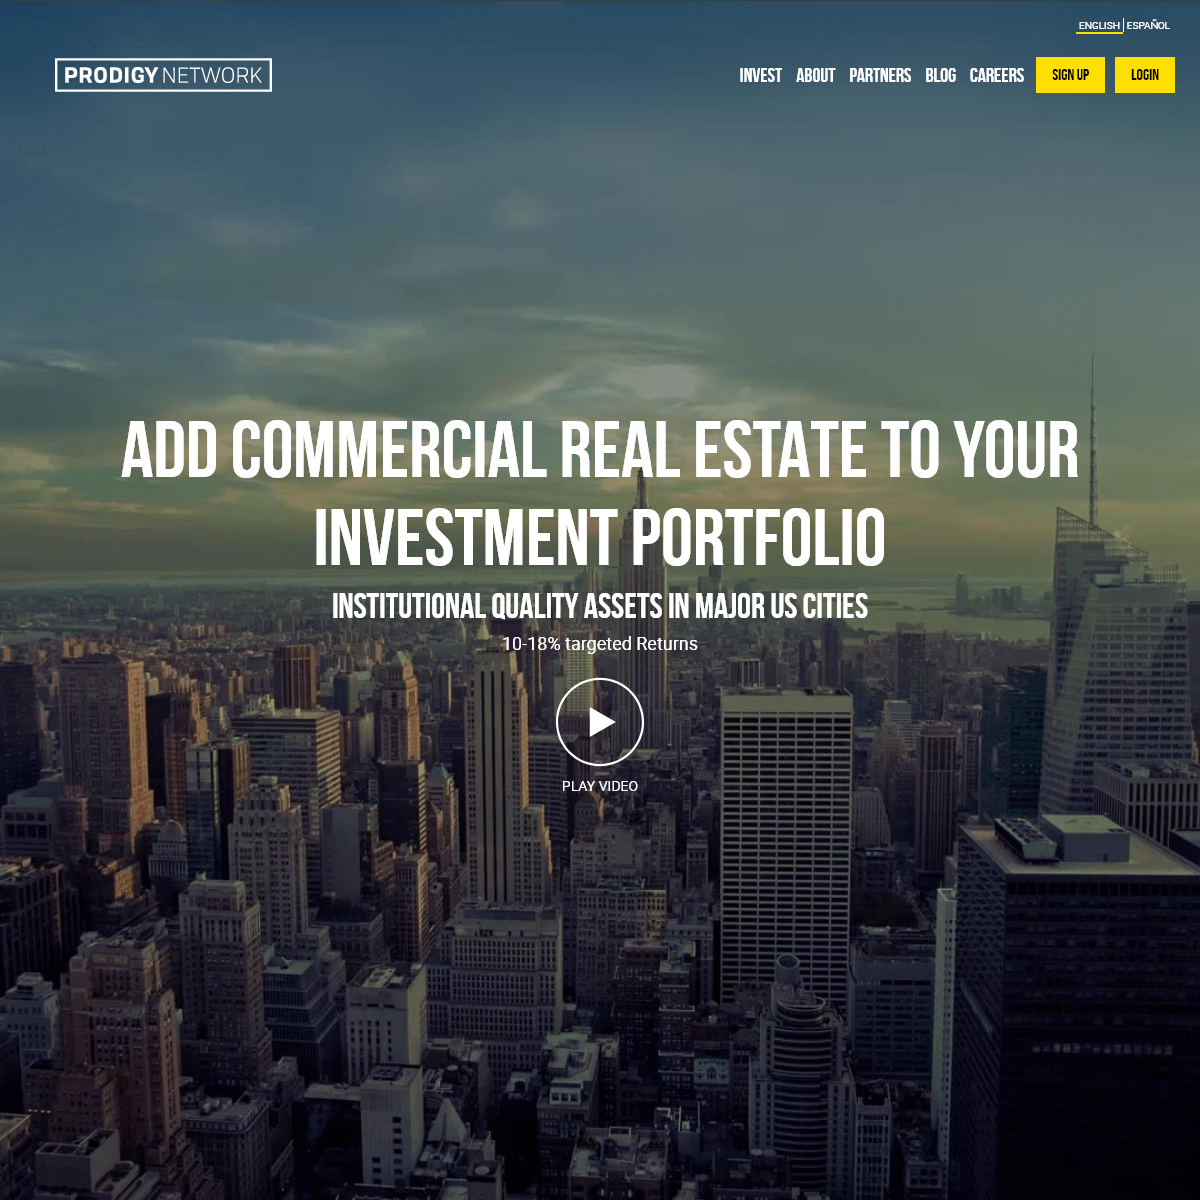 Prodigy Network - Invest in commercial real estate